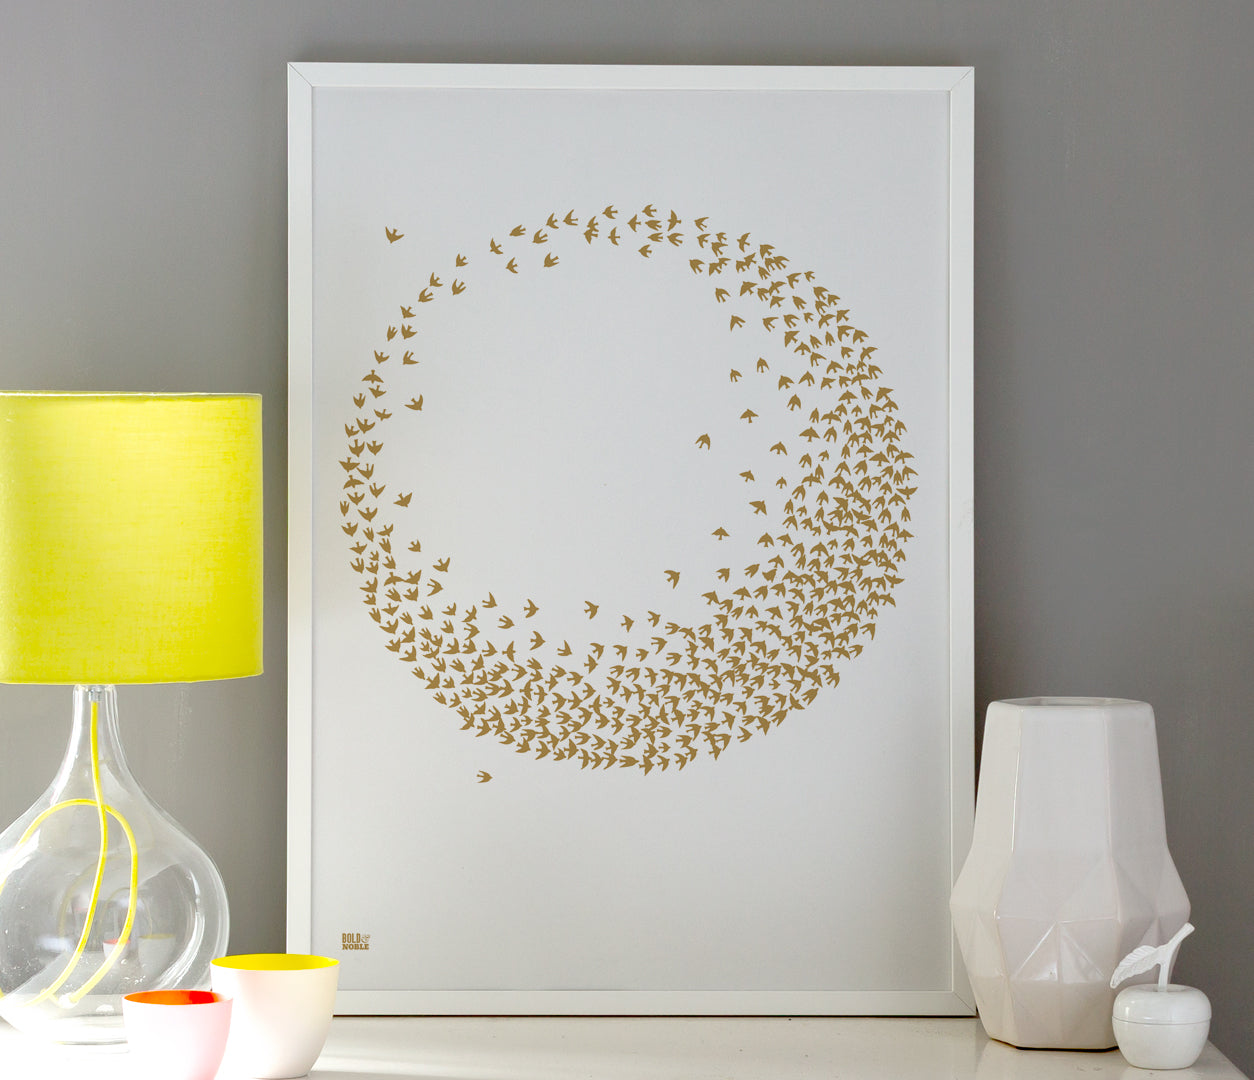 Pictures and Wall Art, Screen Printed Flocking Birds in Bronze